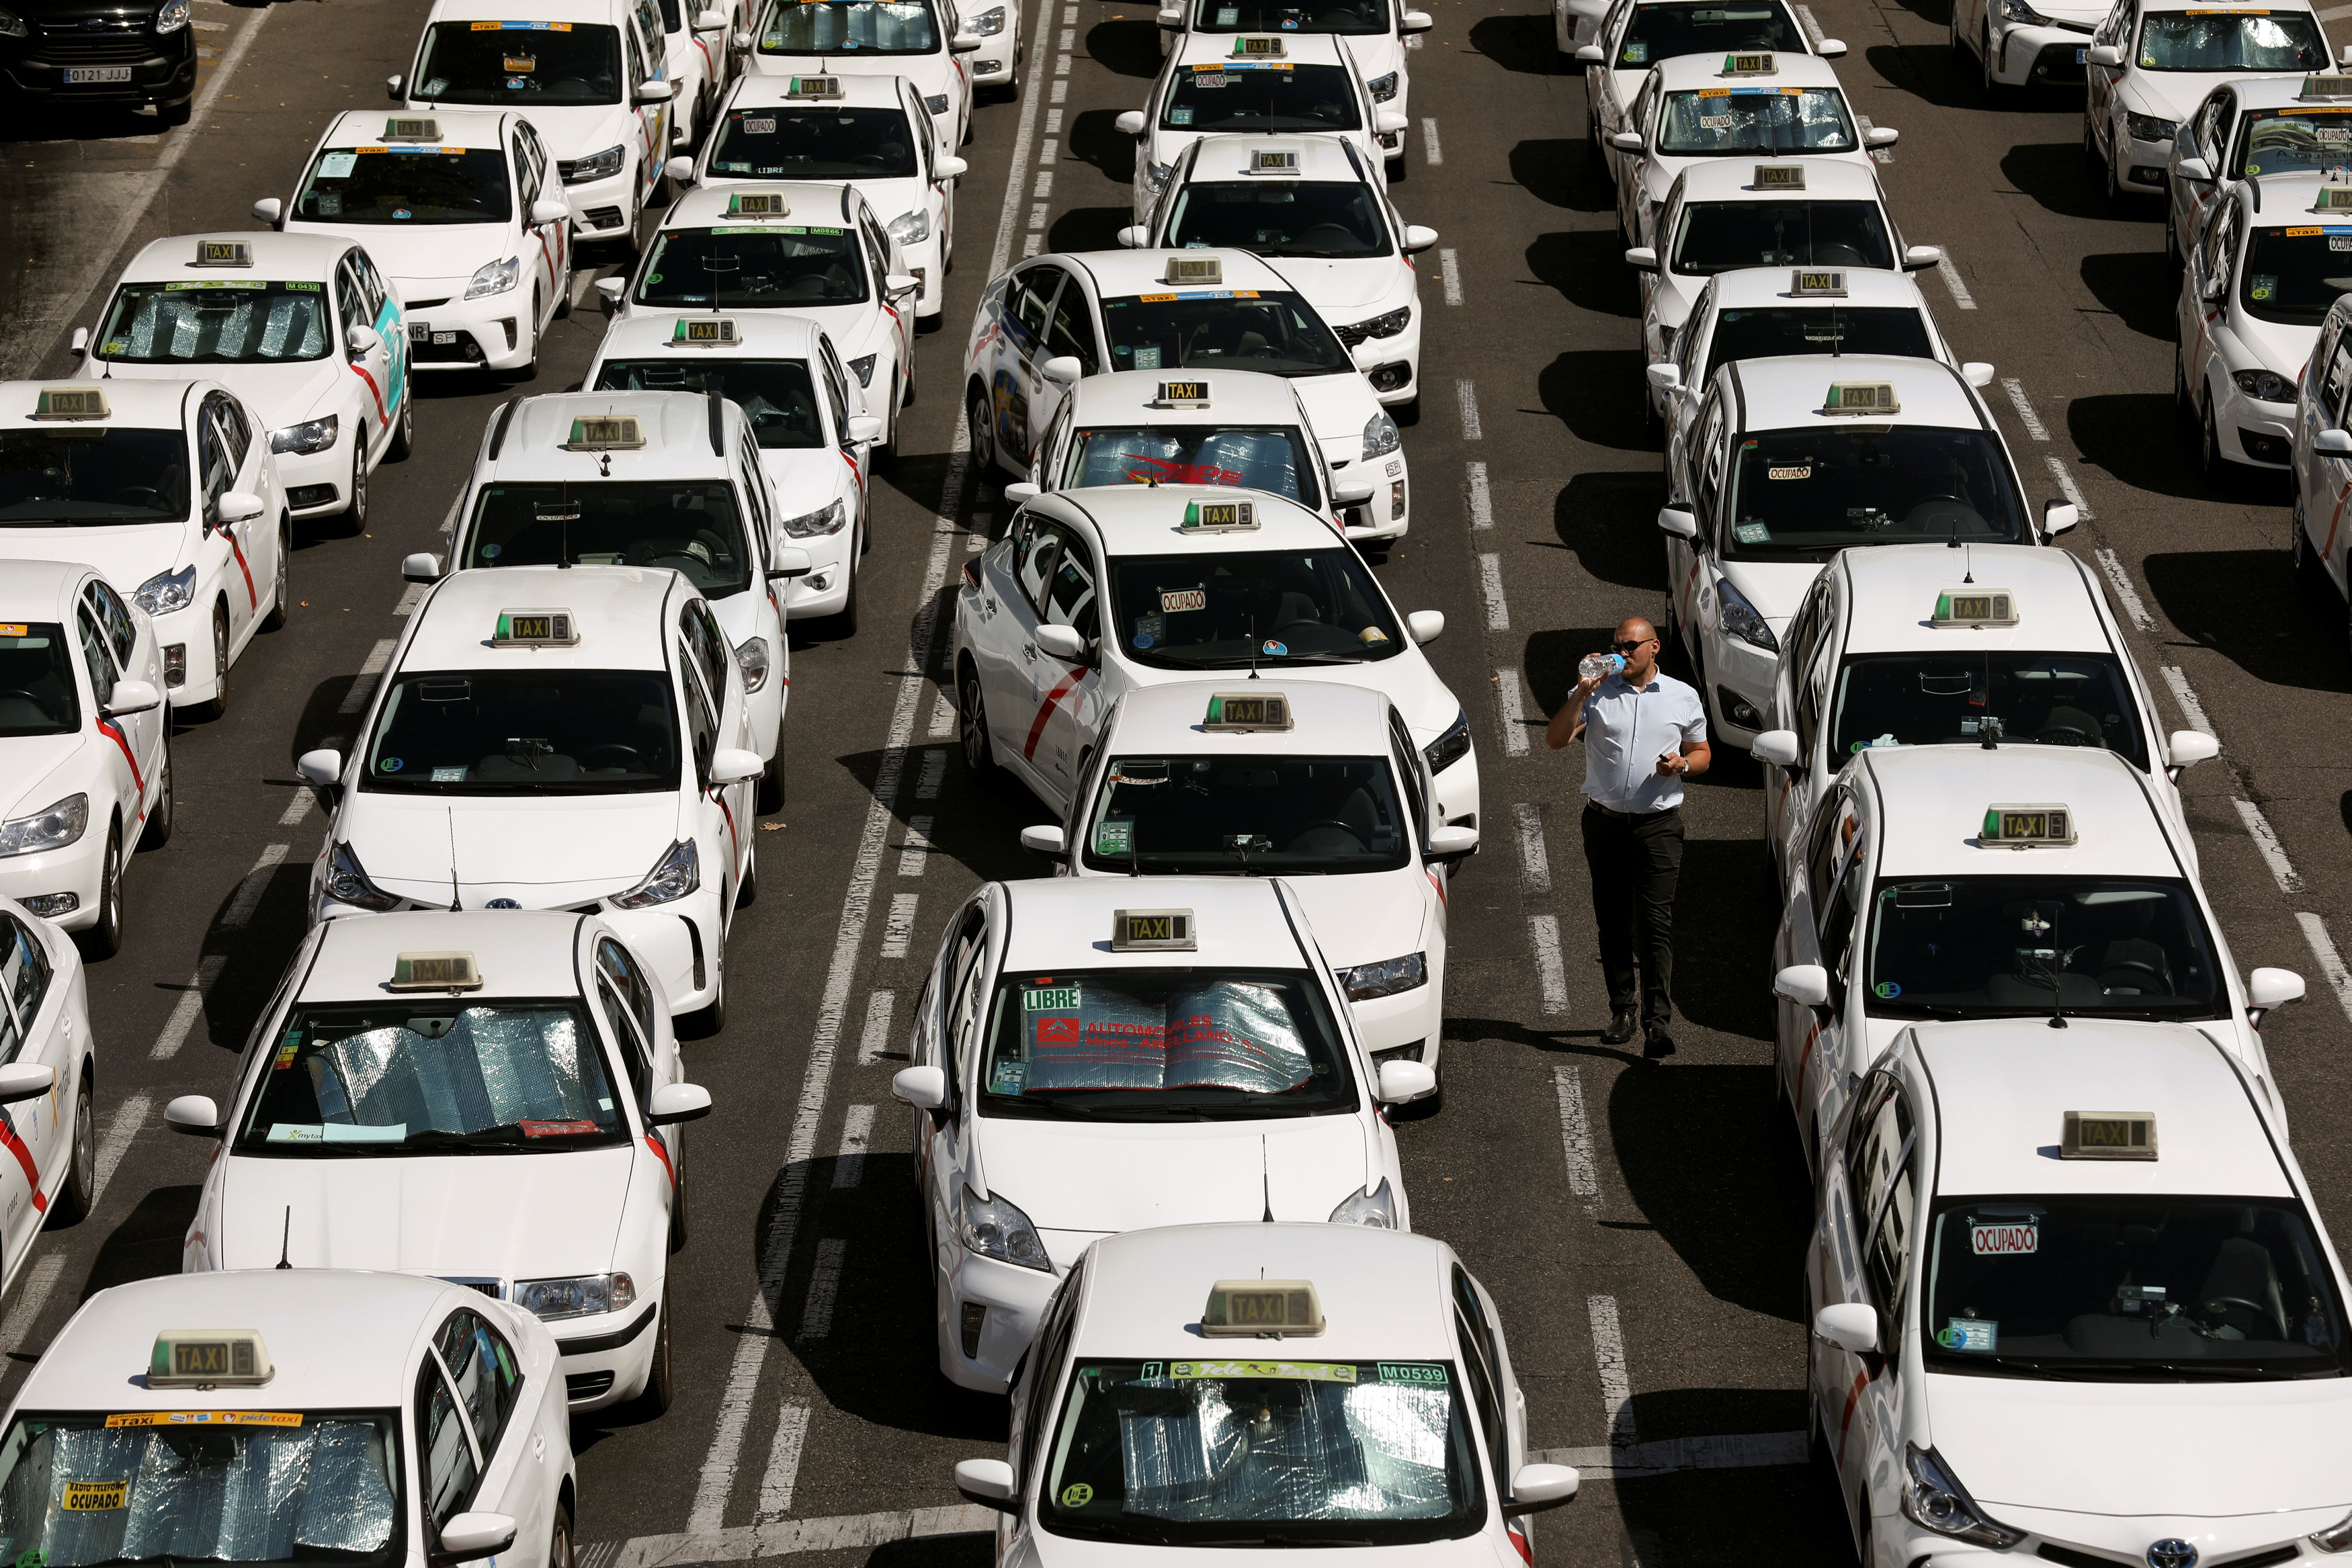 Parked taxis block a section of Paseo de la Castellana, one of Madrid's main avenues, during a strike, in Madrid